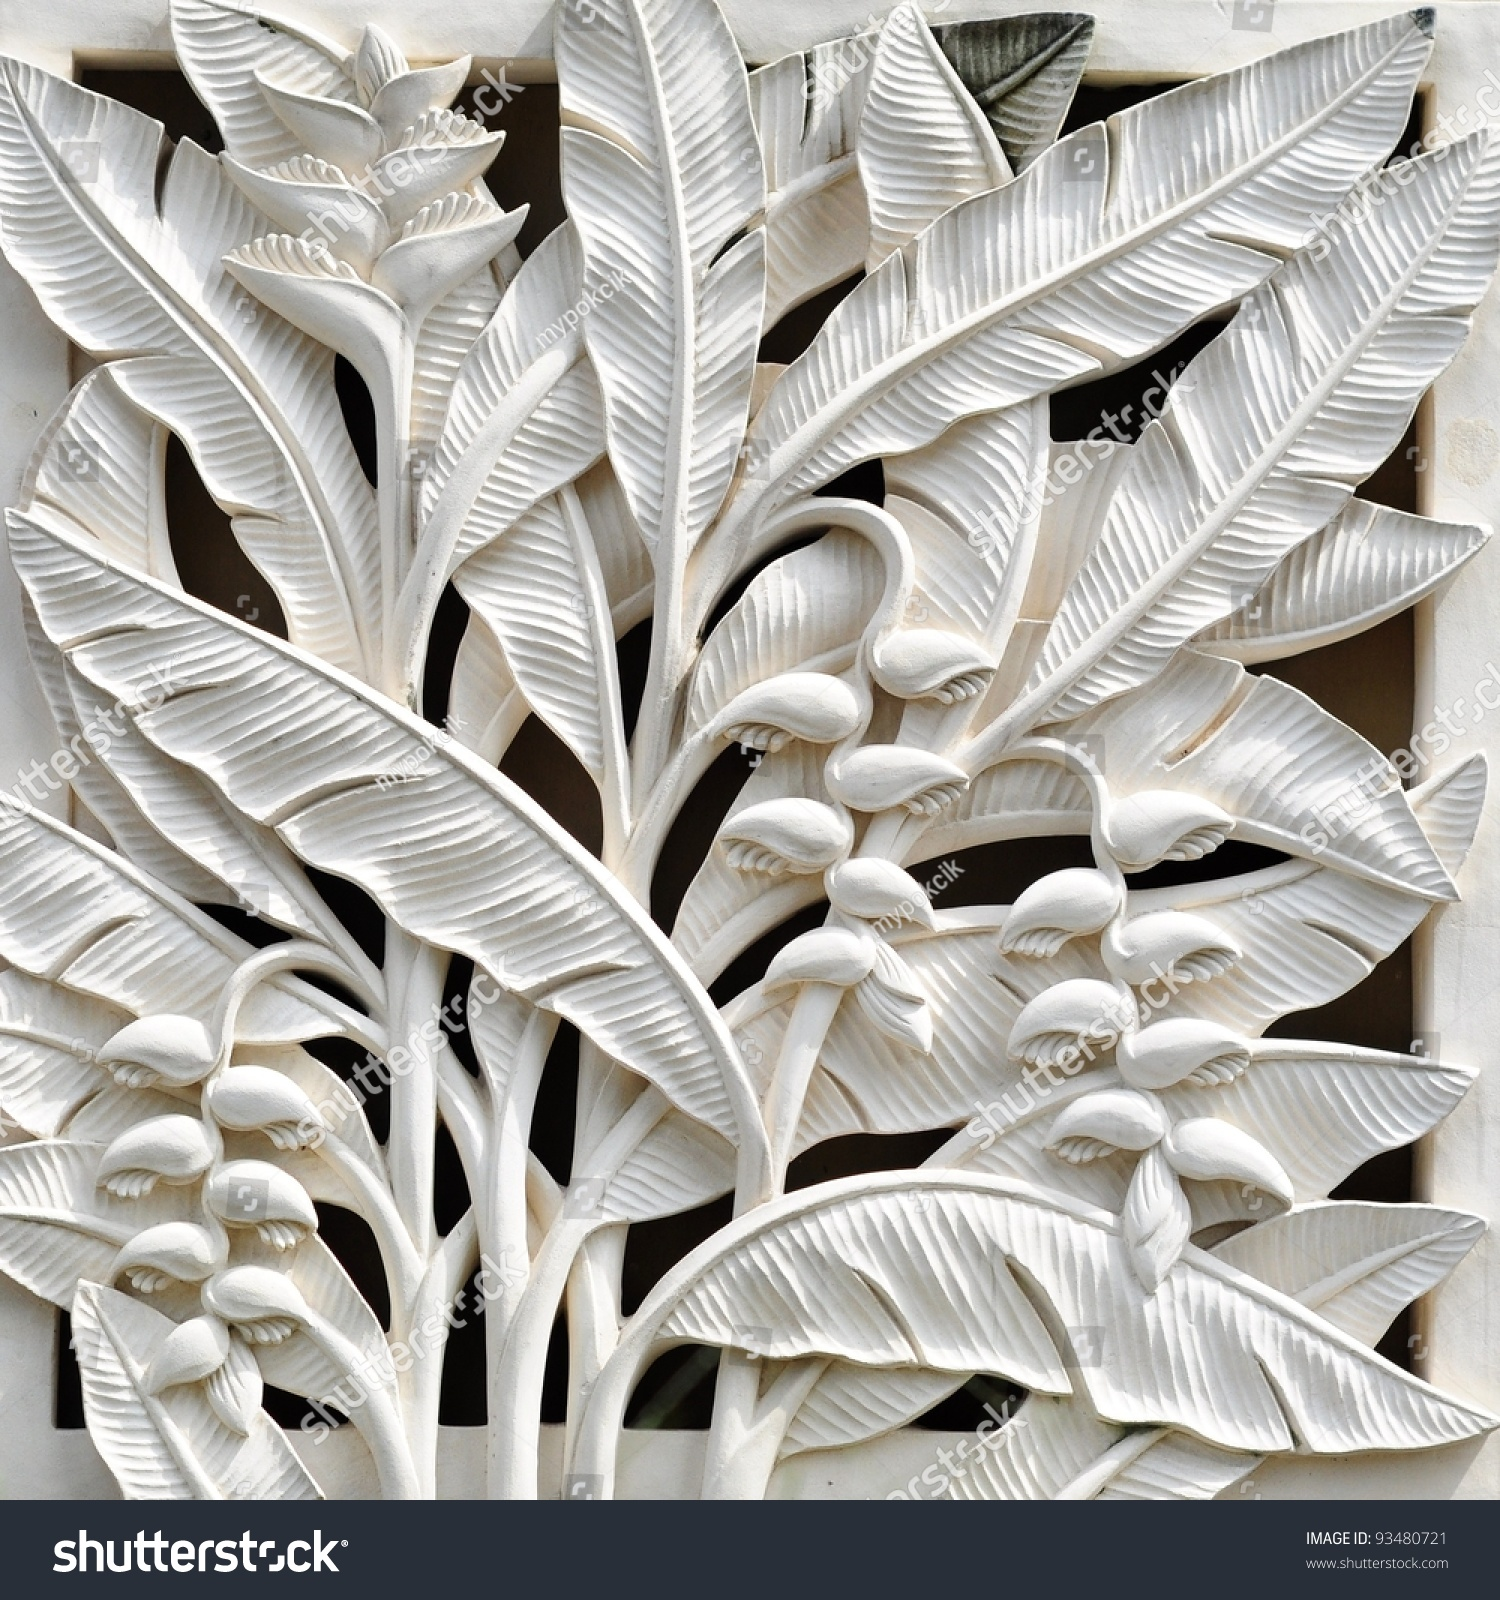 Bali stone carving stock photo shutterstock